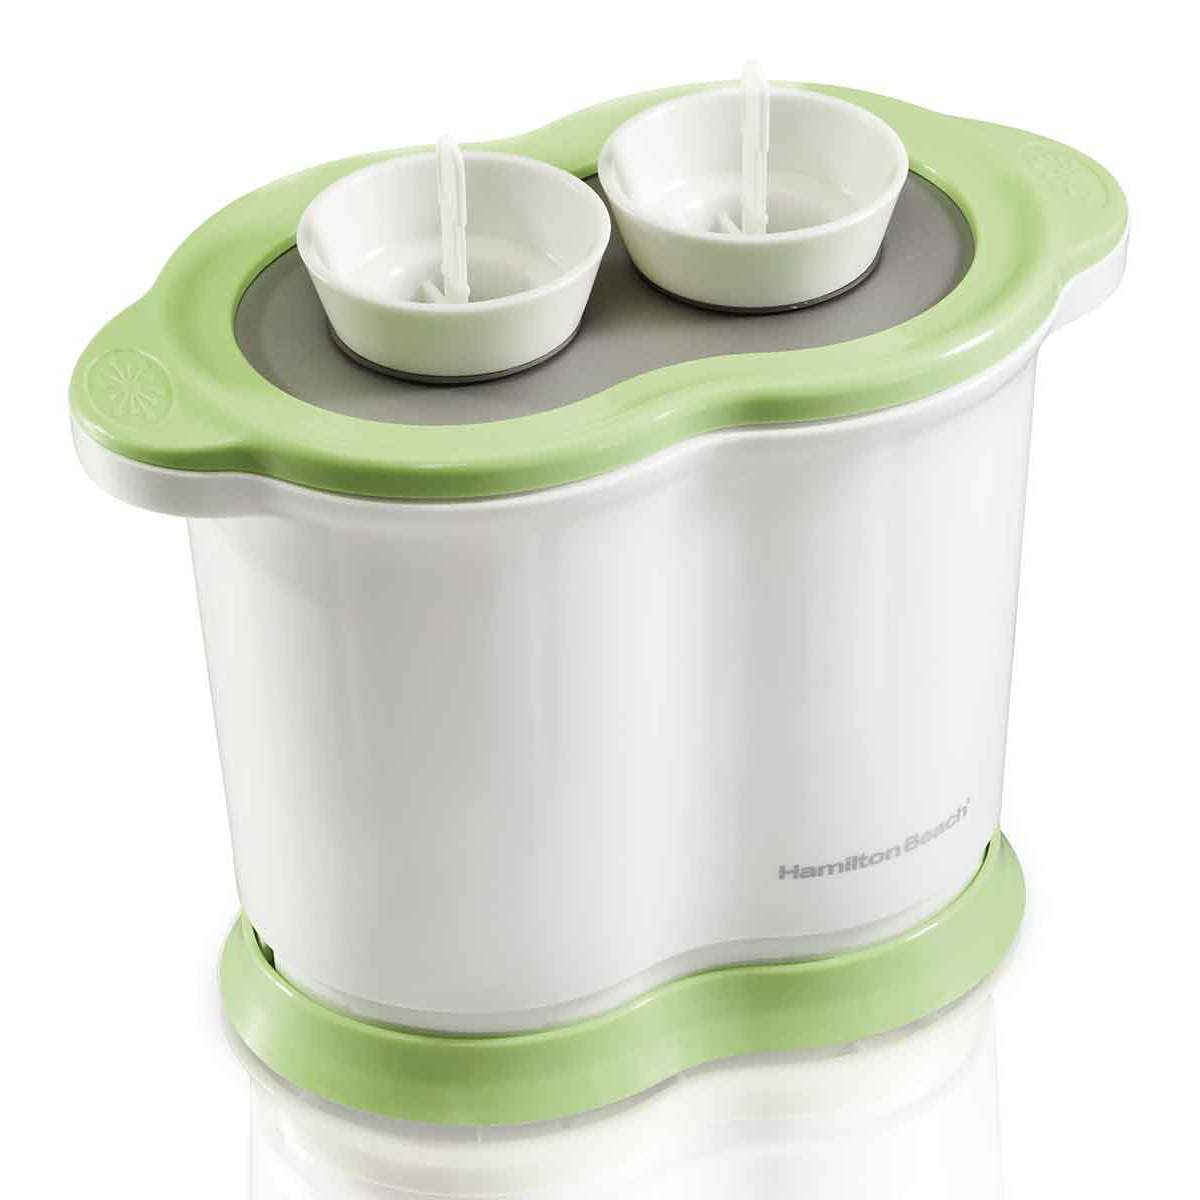 FastPop™ Gourmet Pop Maker (68771)